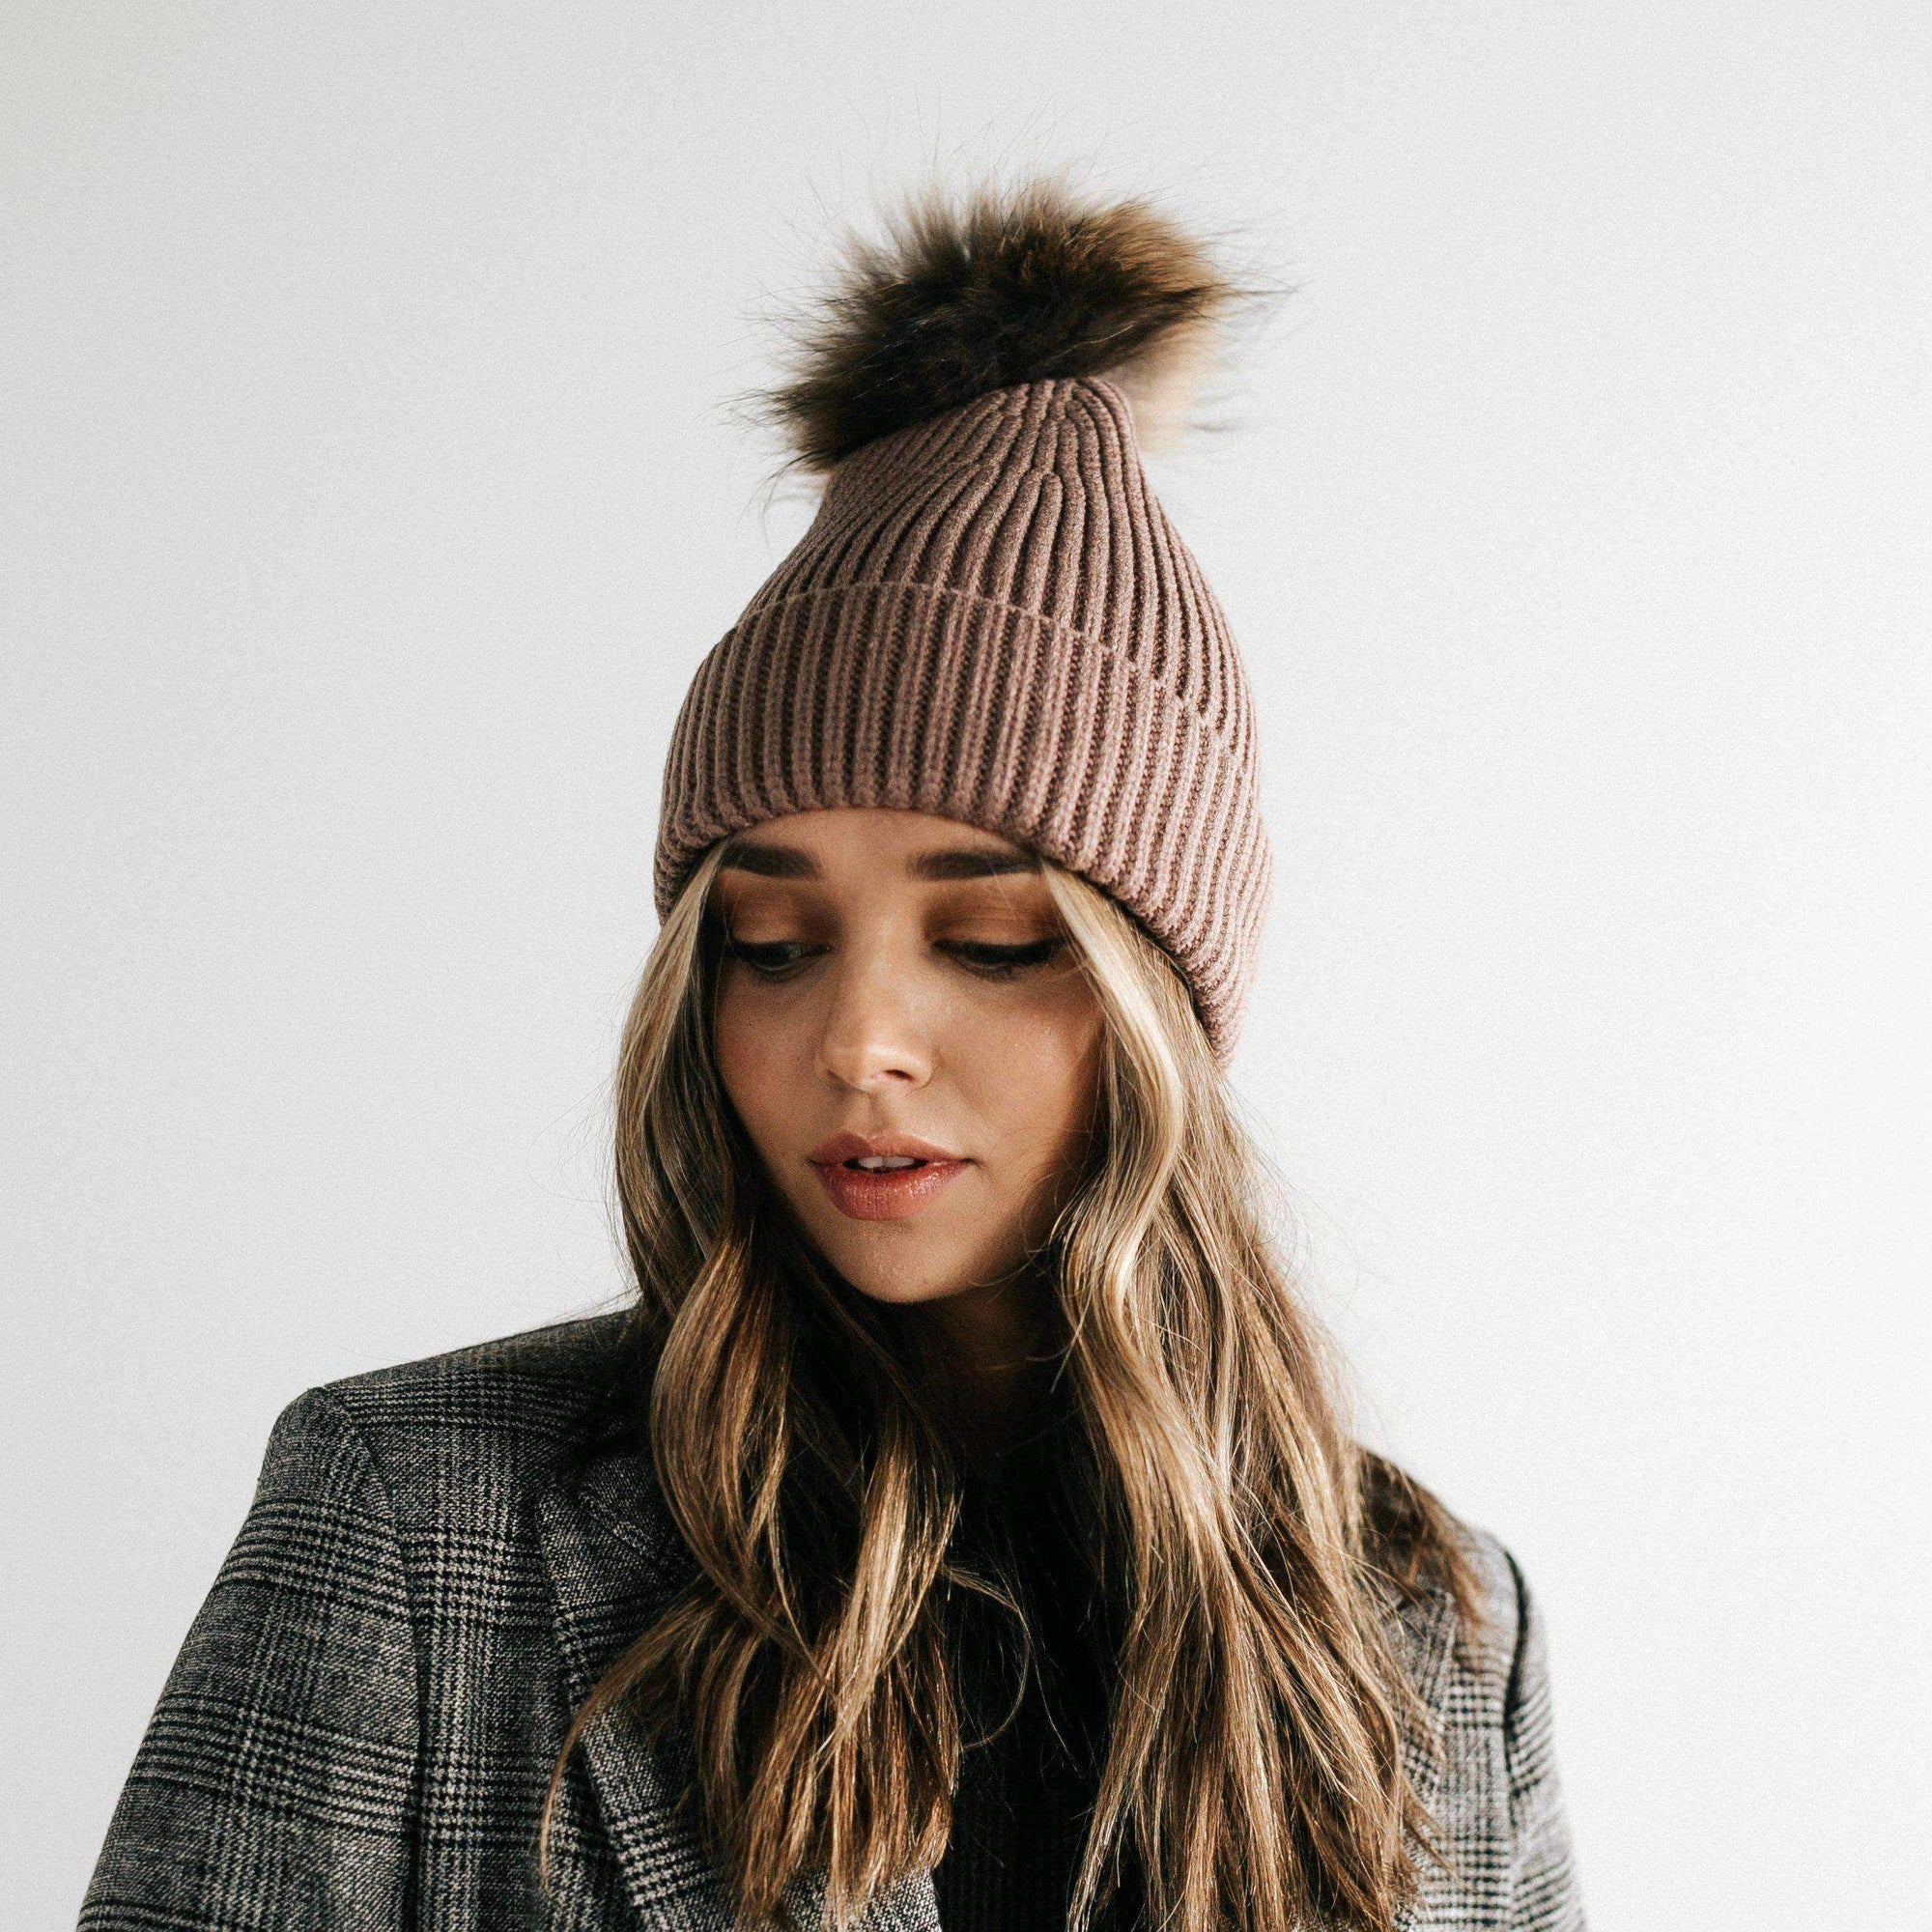 GIGI PIP Hats for Women- Dann Beanie - Taupe with Natural Pom-Beanie